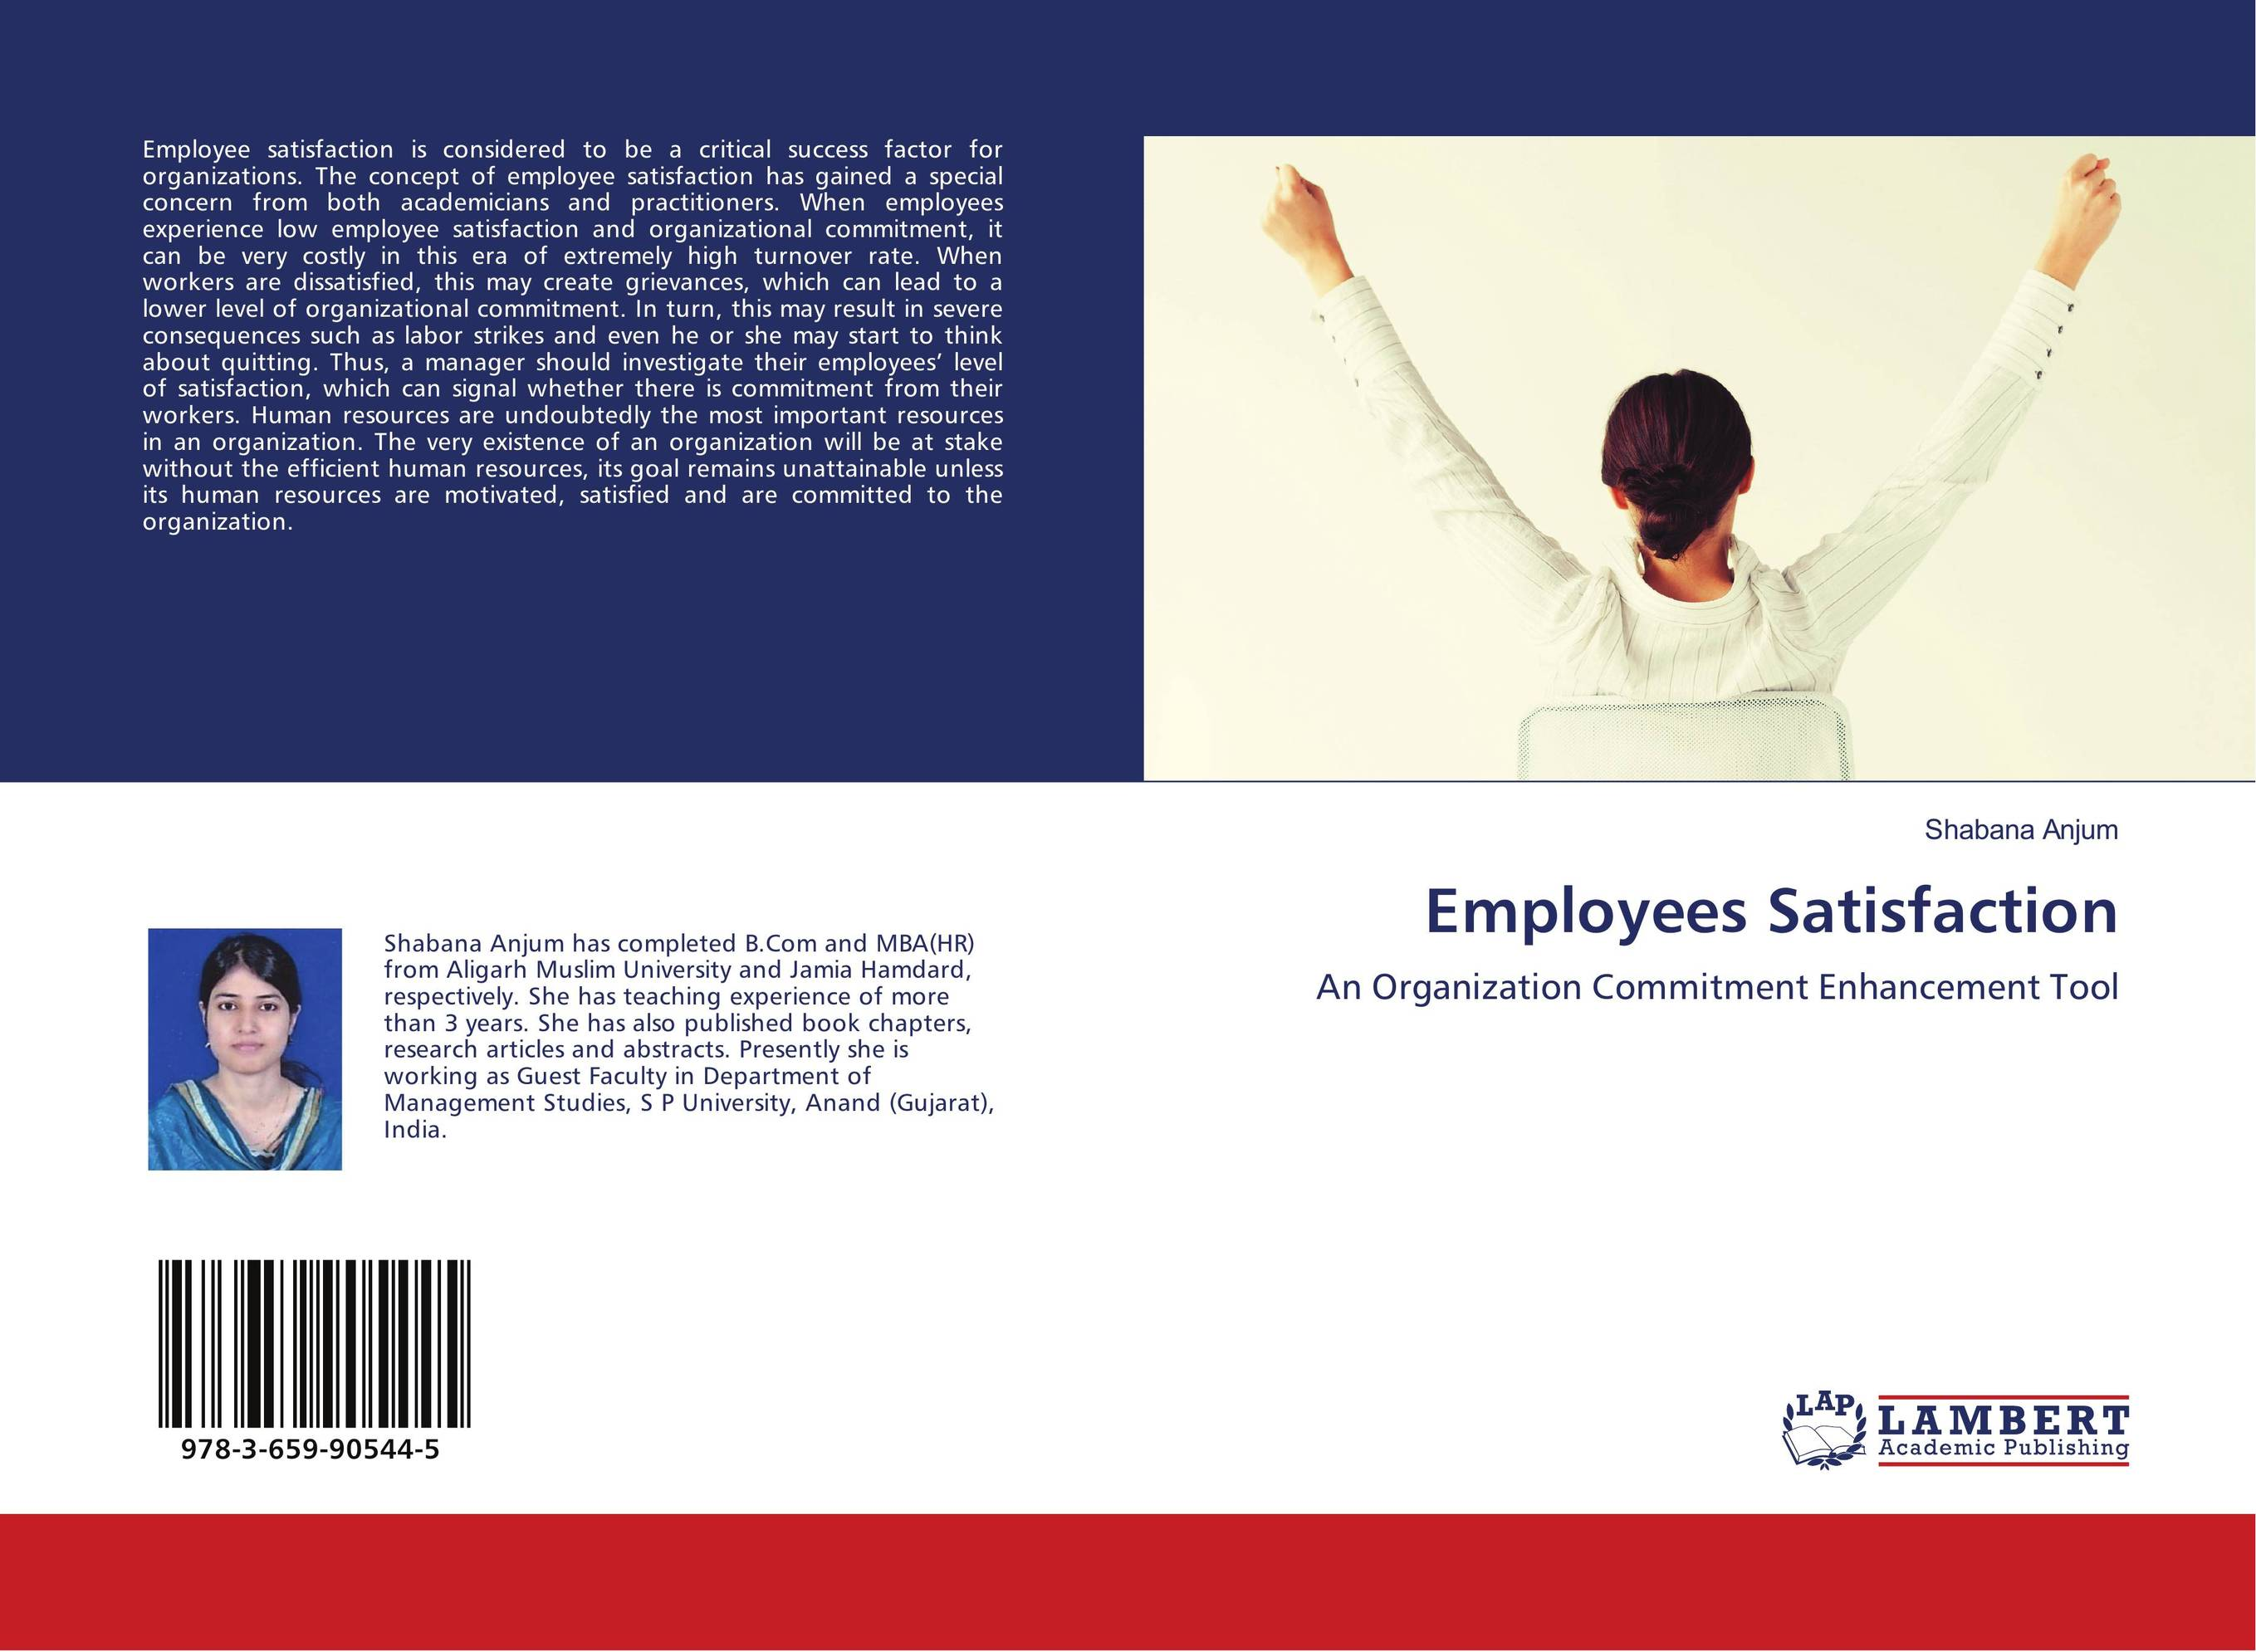 the importance of job satisfaction and organizational commitment for employee retention Organizational commitmentprofessional , commitment, burnout and job satisfaction in the ecatgory of demographic data, age (being young), lack of work experience and lack of competencewere statistically.